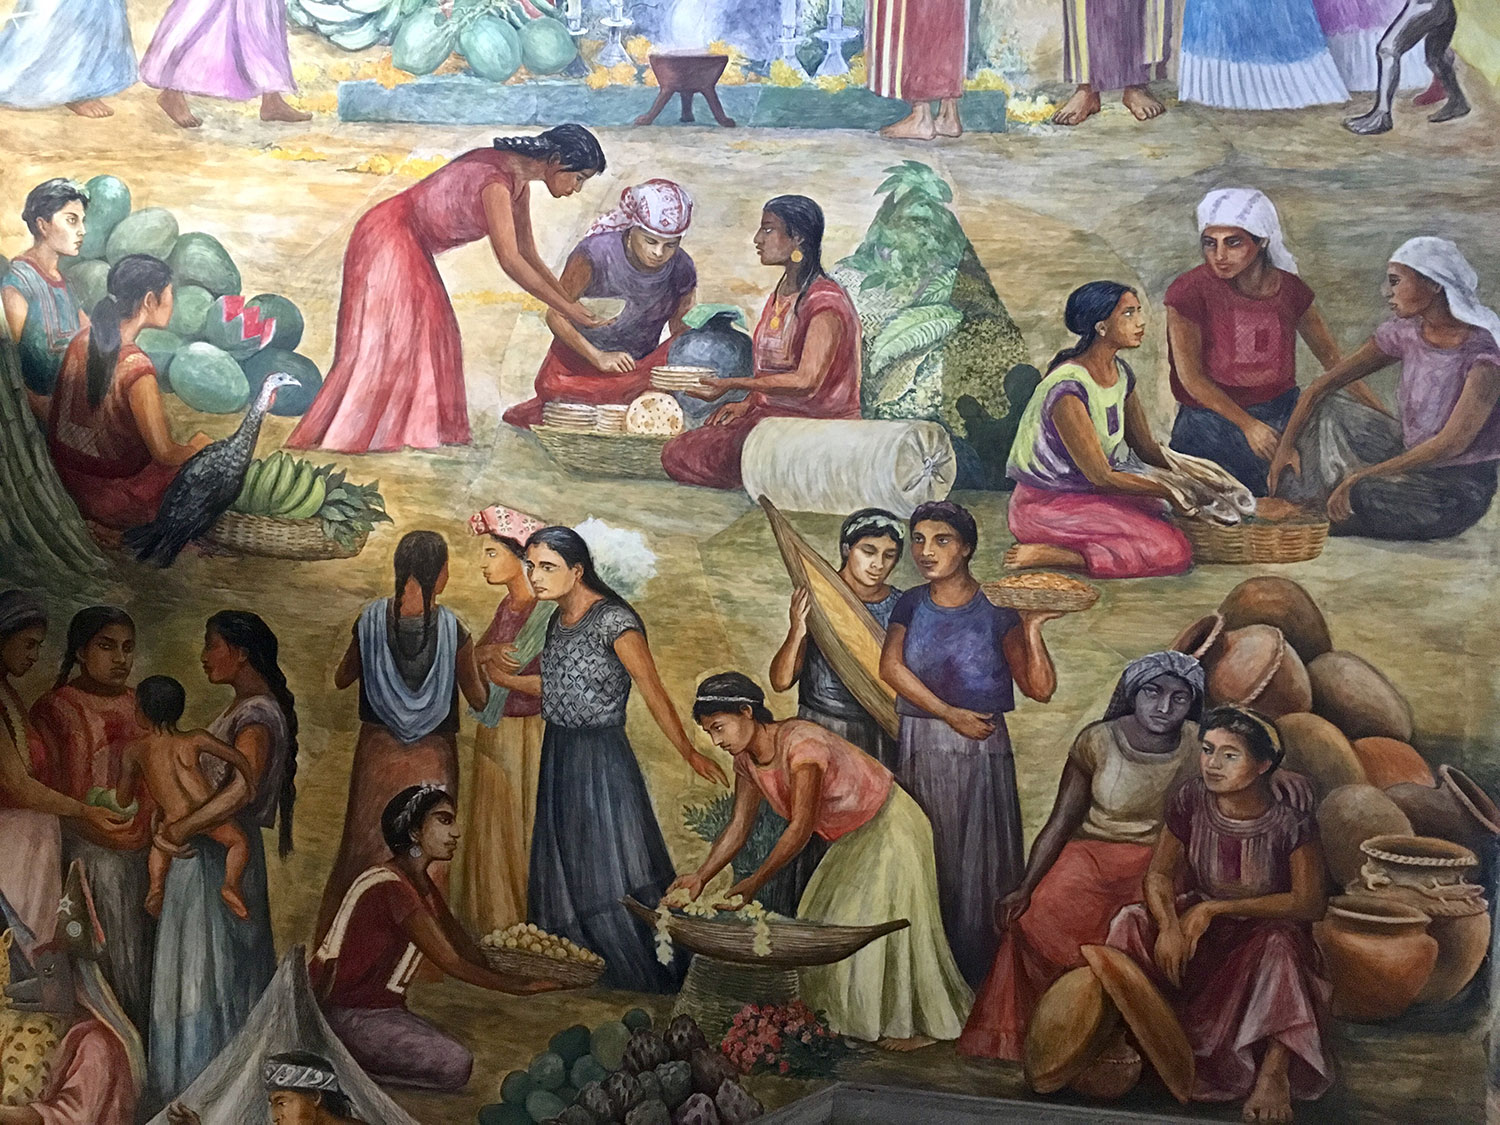 I took this photo of the mural at the Oaxaca Government Palace. It shows Zapotec women trading food at the market.